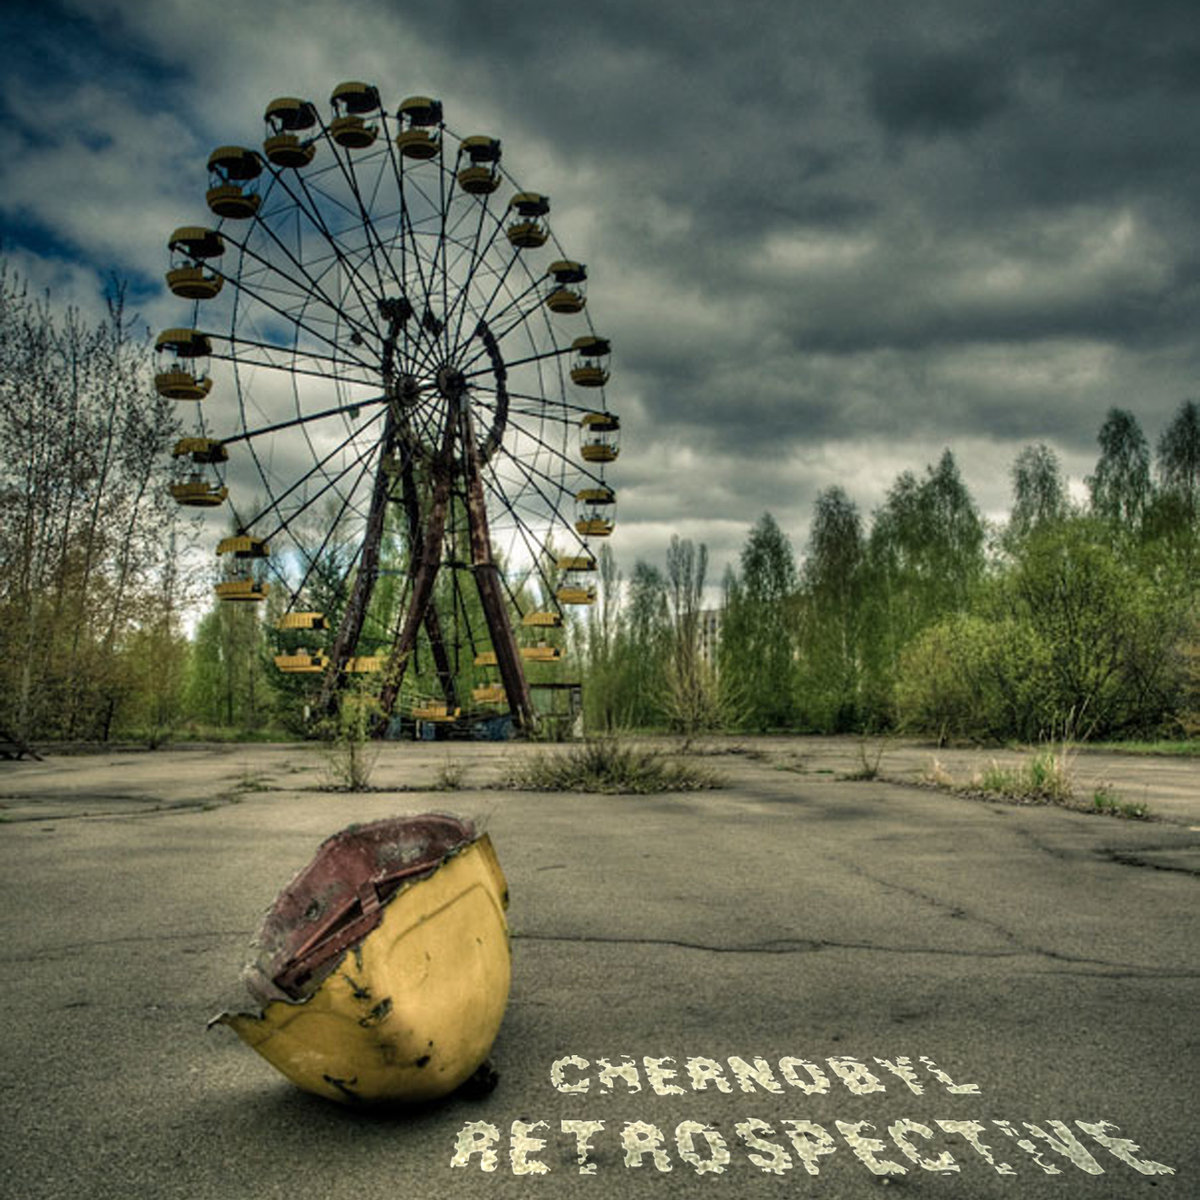 Xcentric Noizz - Cluster Decay @ 'Various Artists - Chernobyl Retrospective' album (electronic, ambient)